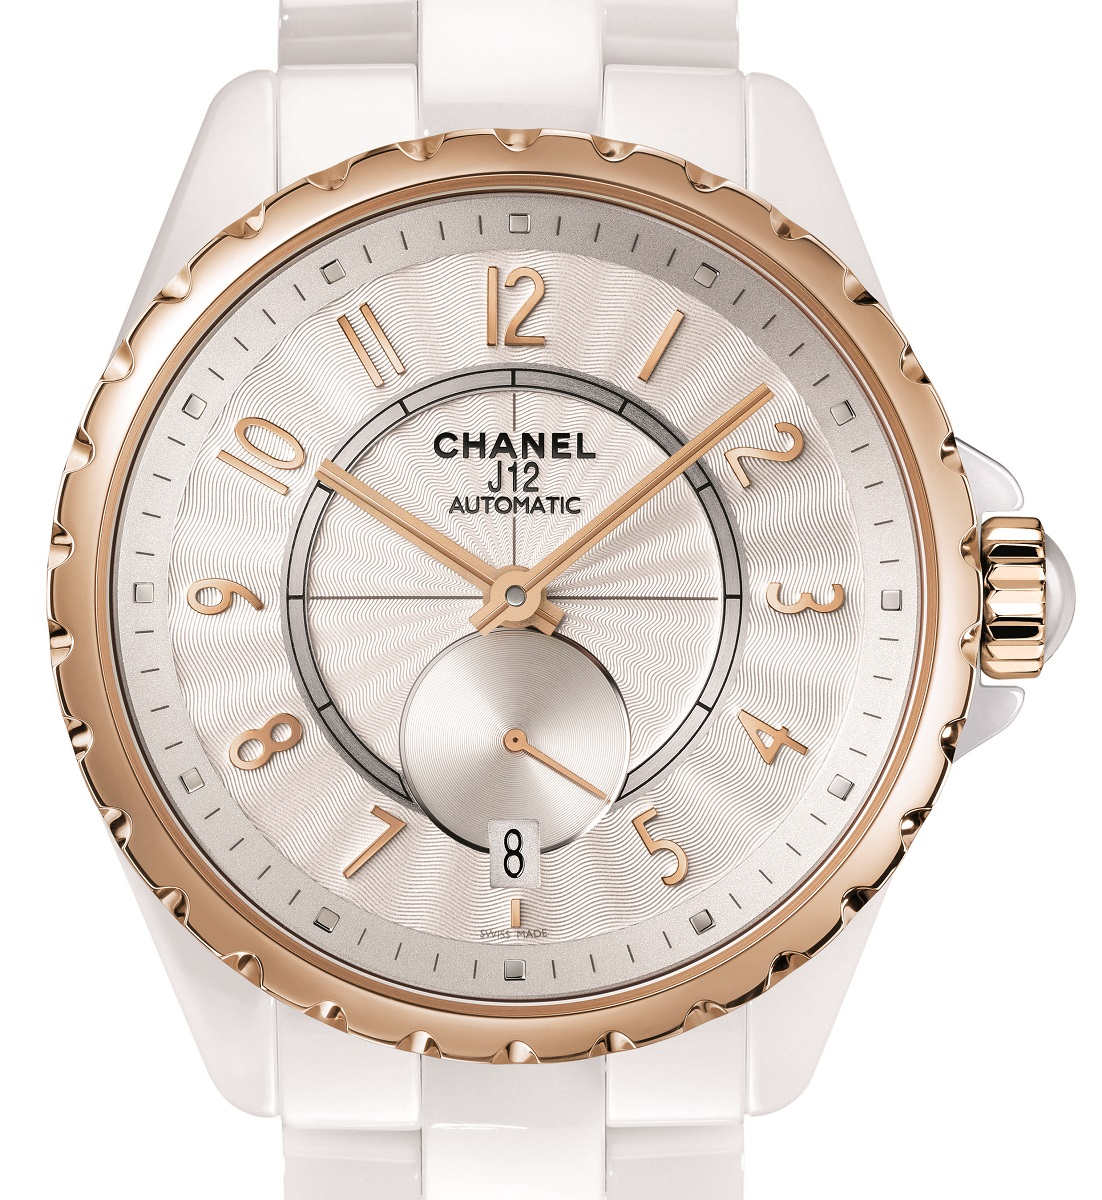 Chanel-J12-365-ceramic-beige-gold-284291